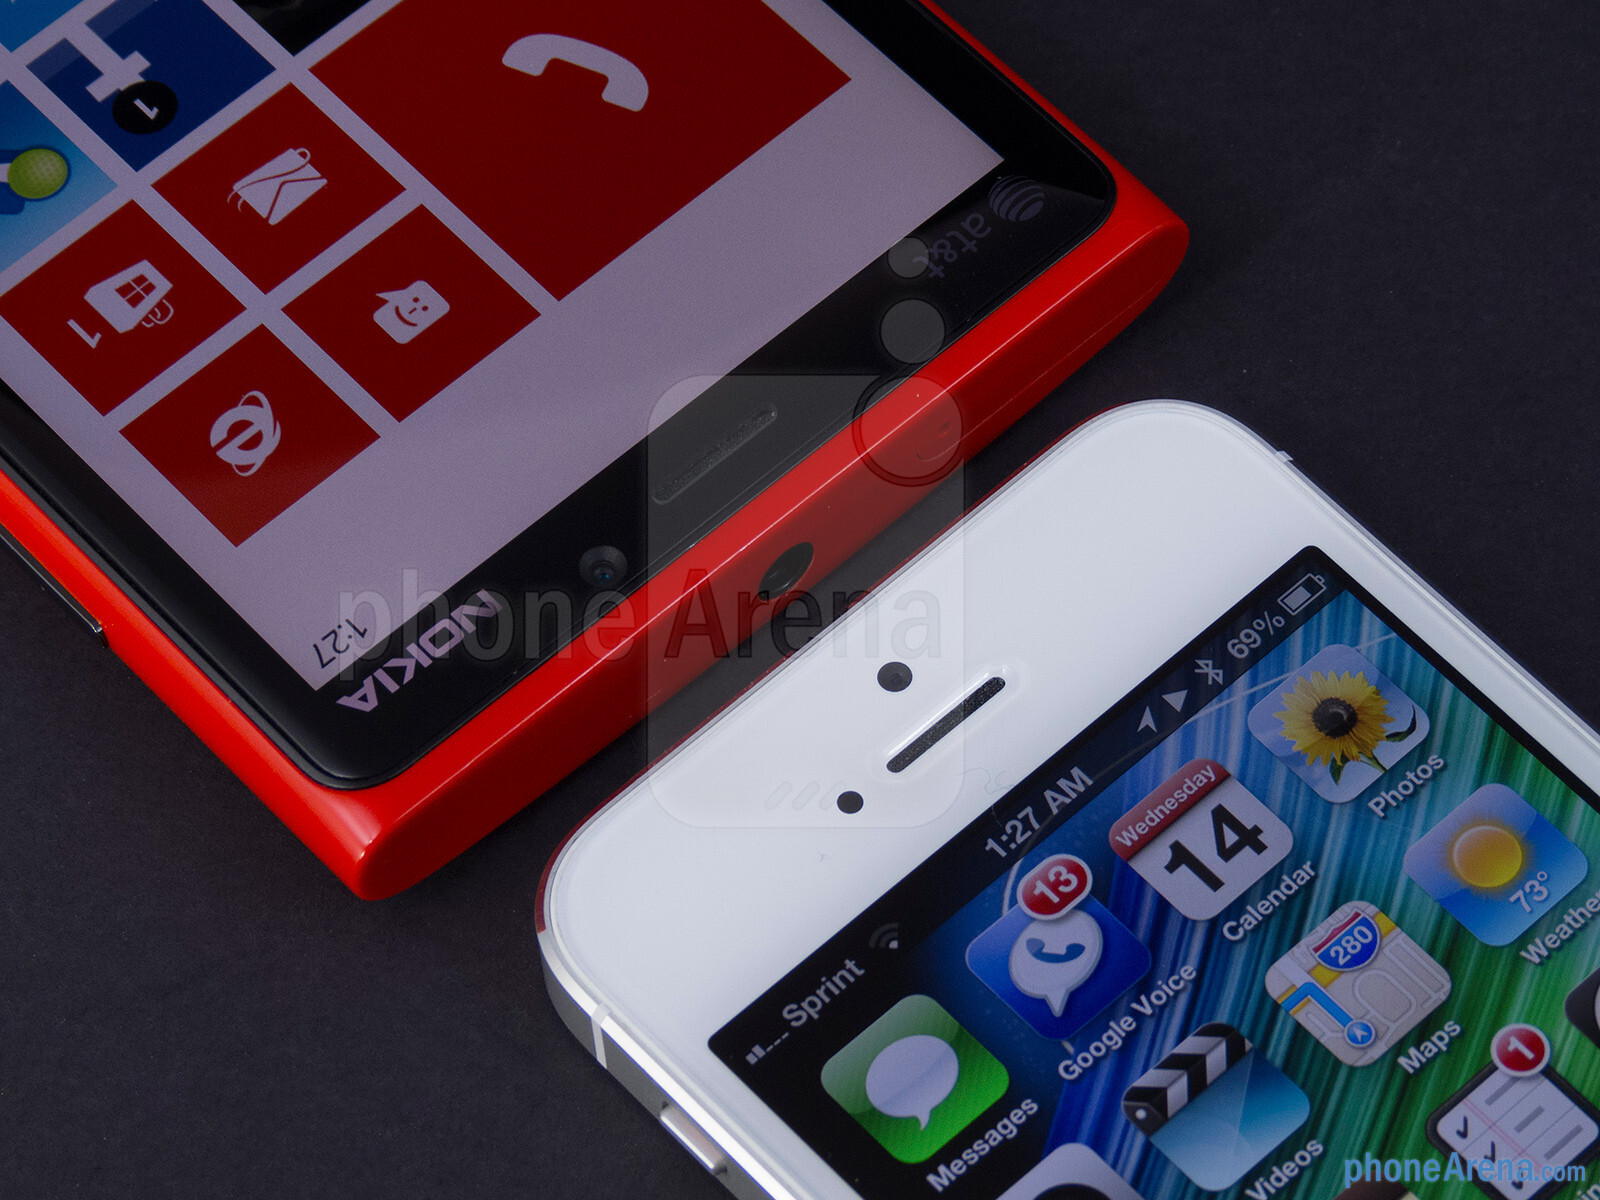 Nokia Lumia 920 Vs Apple Iphone 5 Touchscreen Front Cameras The Left And